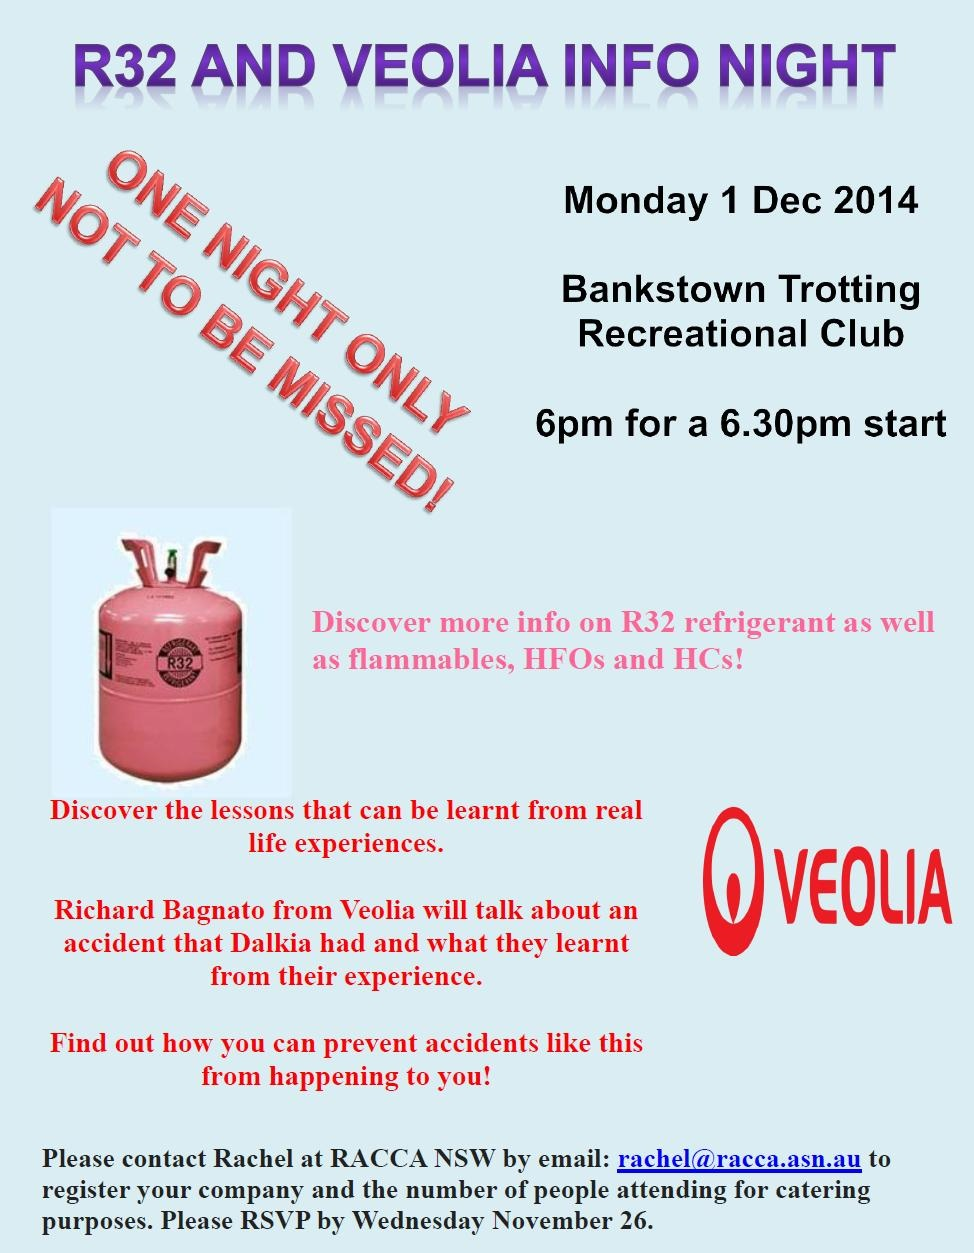 R32 and Veolia Info Night